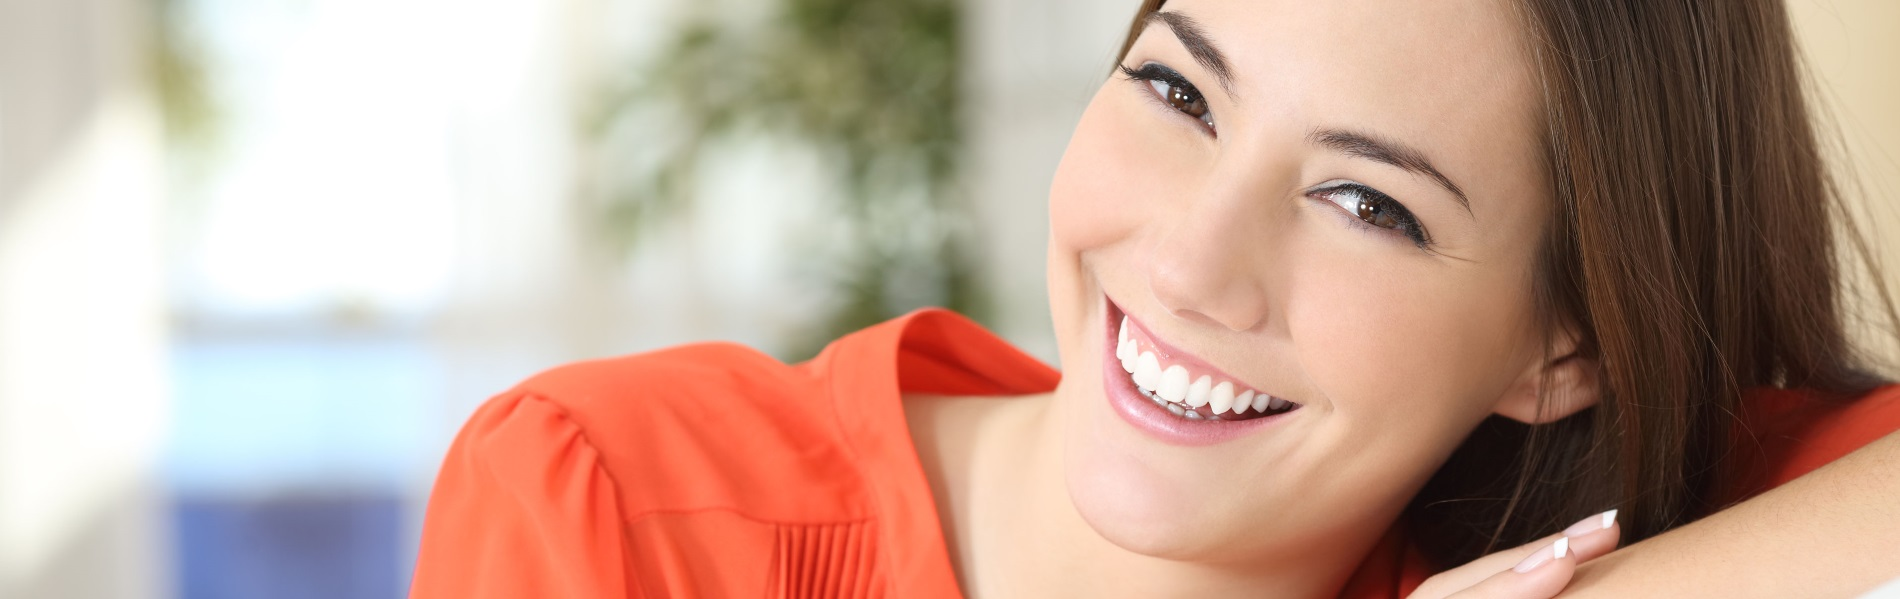 A young, smiling woman portrays the concept of dental care Tucson at Discovery Smiles Dentistry.